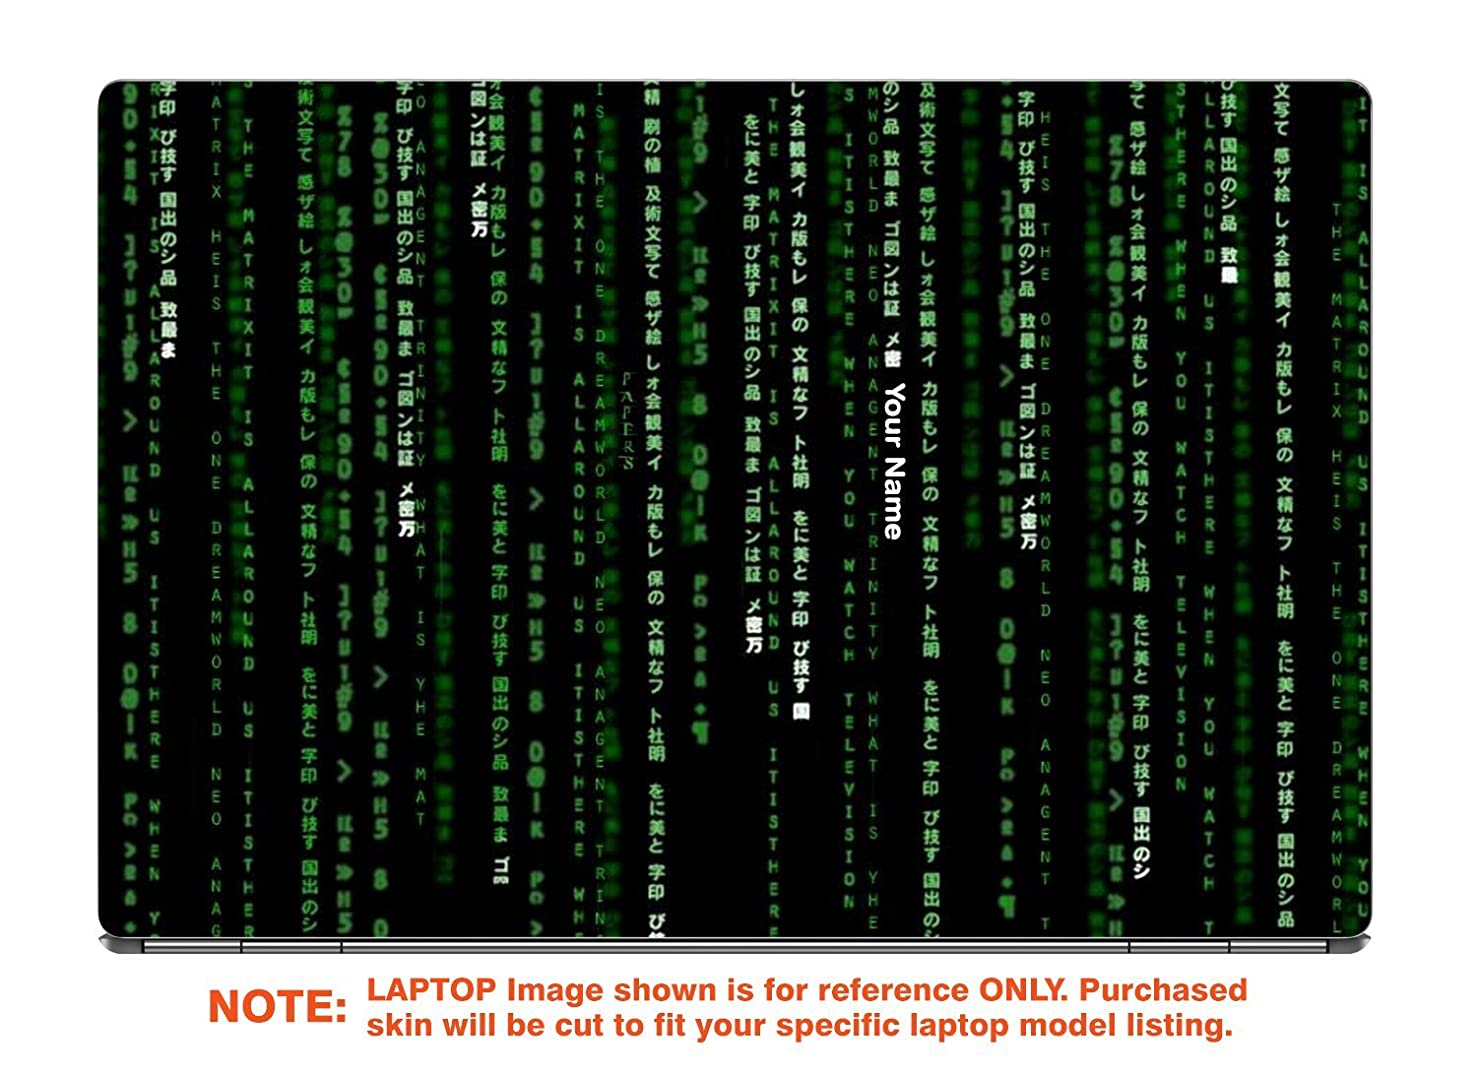 decalrus - Protective decal for the Samsung Notebook 7 Spin 2-in-1 NP730QAA (13.3